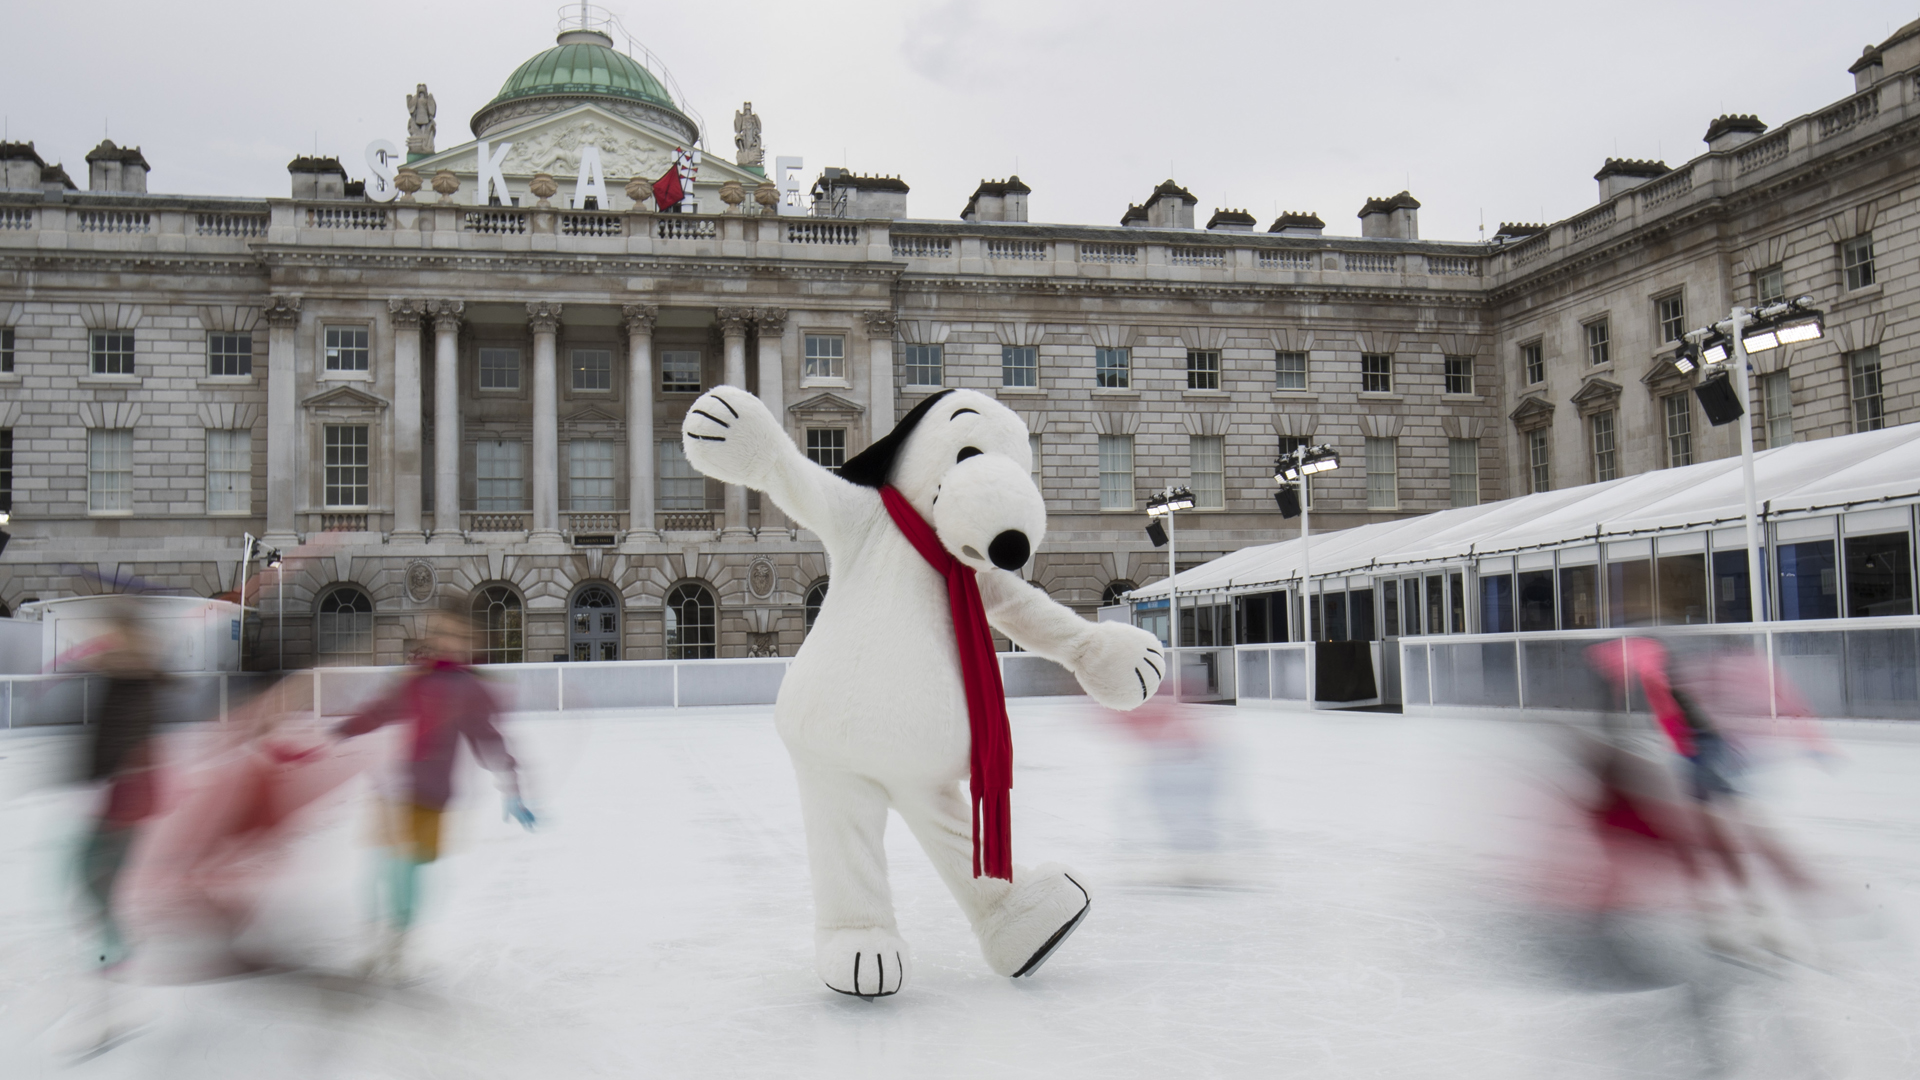 Snoopy joins future star skaters on the ice to celebrate the launch of Skate at Somerset House with Fortnum & Mason 2018 and winter exhibition Good Grief, Charlie Brown on Nov. 12, 2018 in London, England. (Credit: John Phillips/Getty Images)